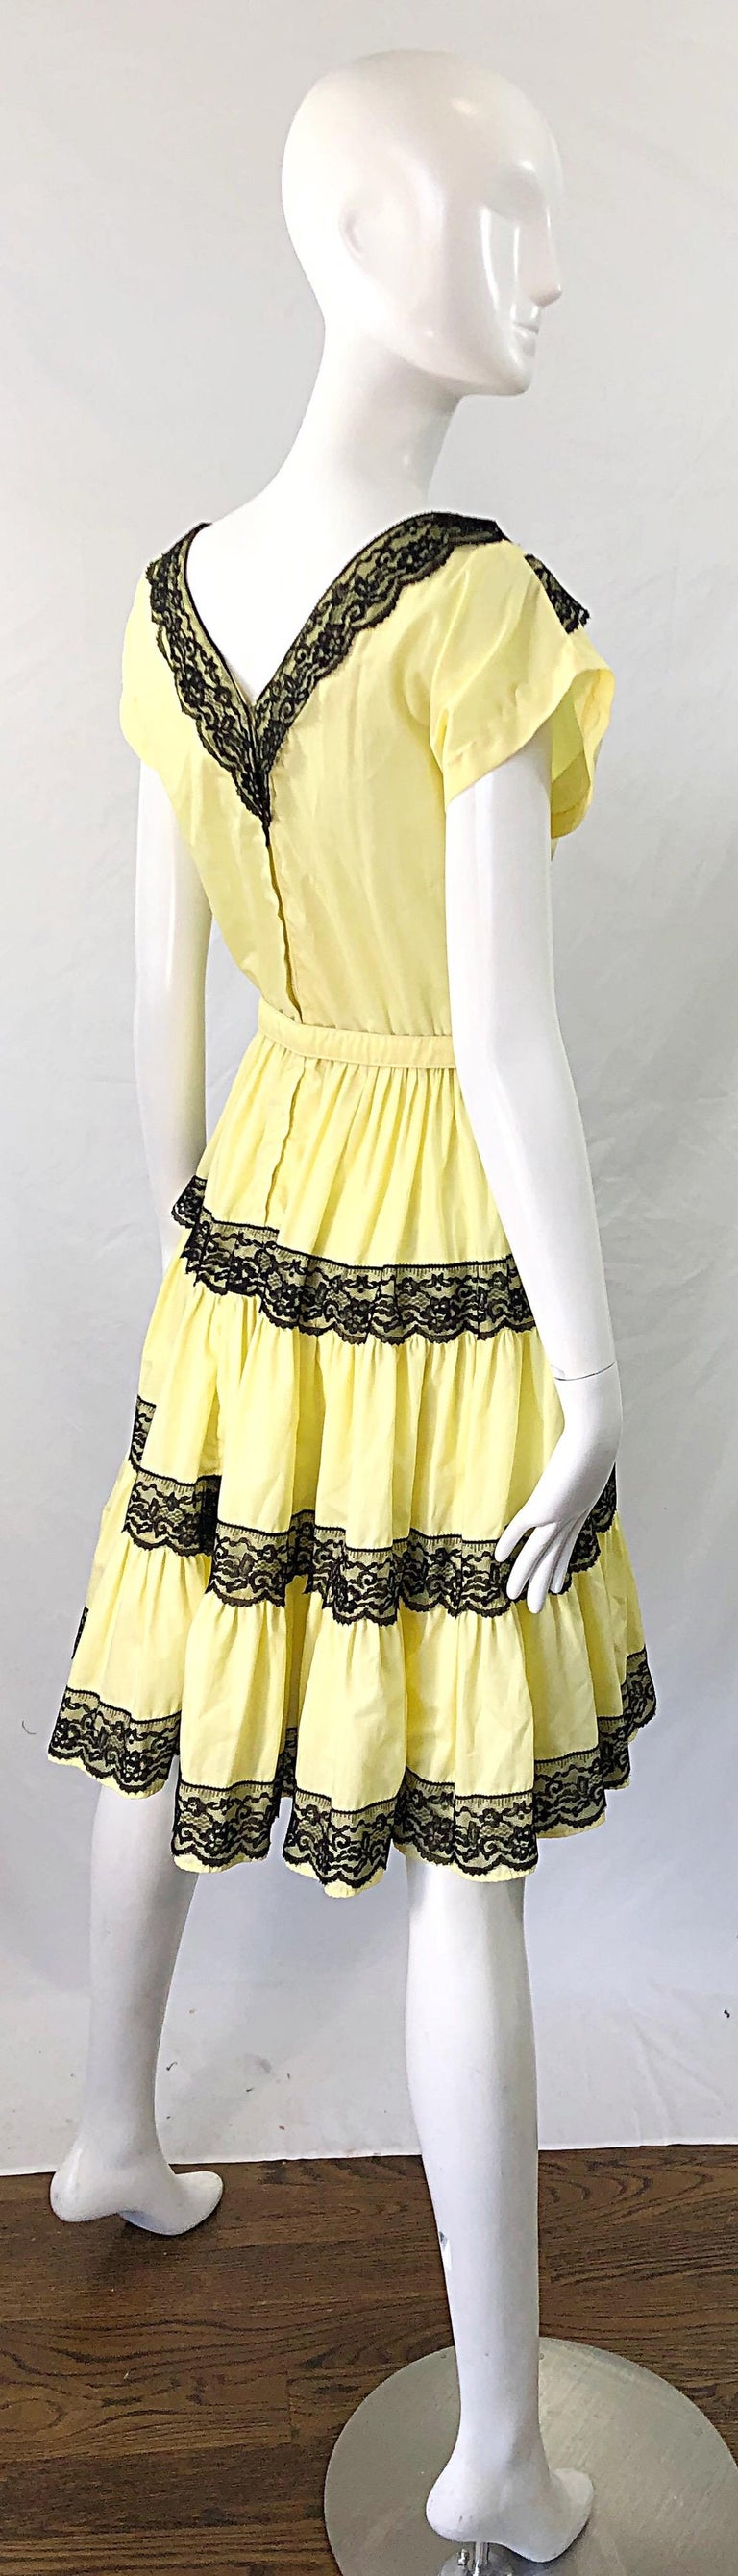 Beige 1950s Bettina of Miami Yellow + Black Cotton Lace Fit n' Flare Vintage 50s Dress For Sale